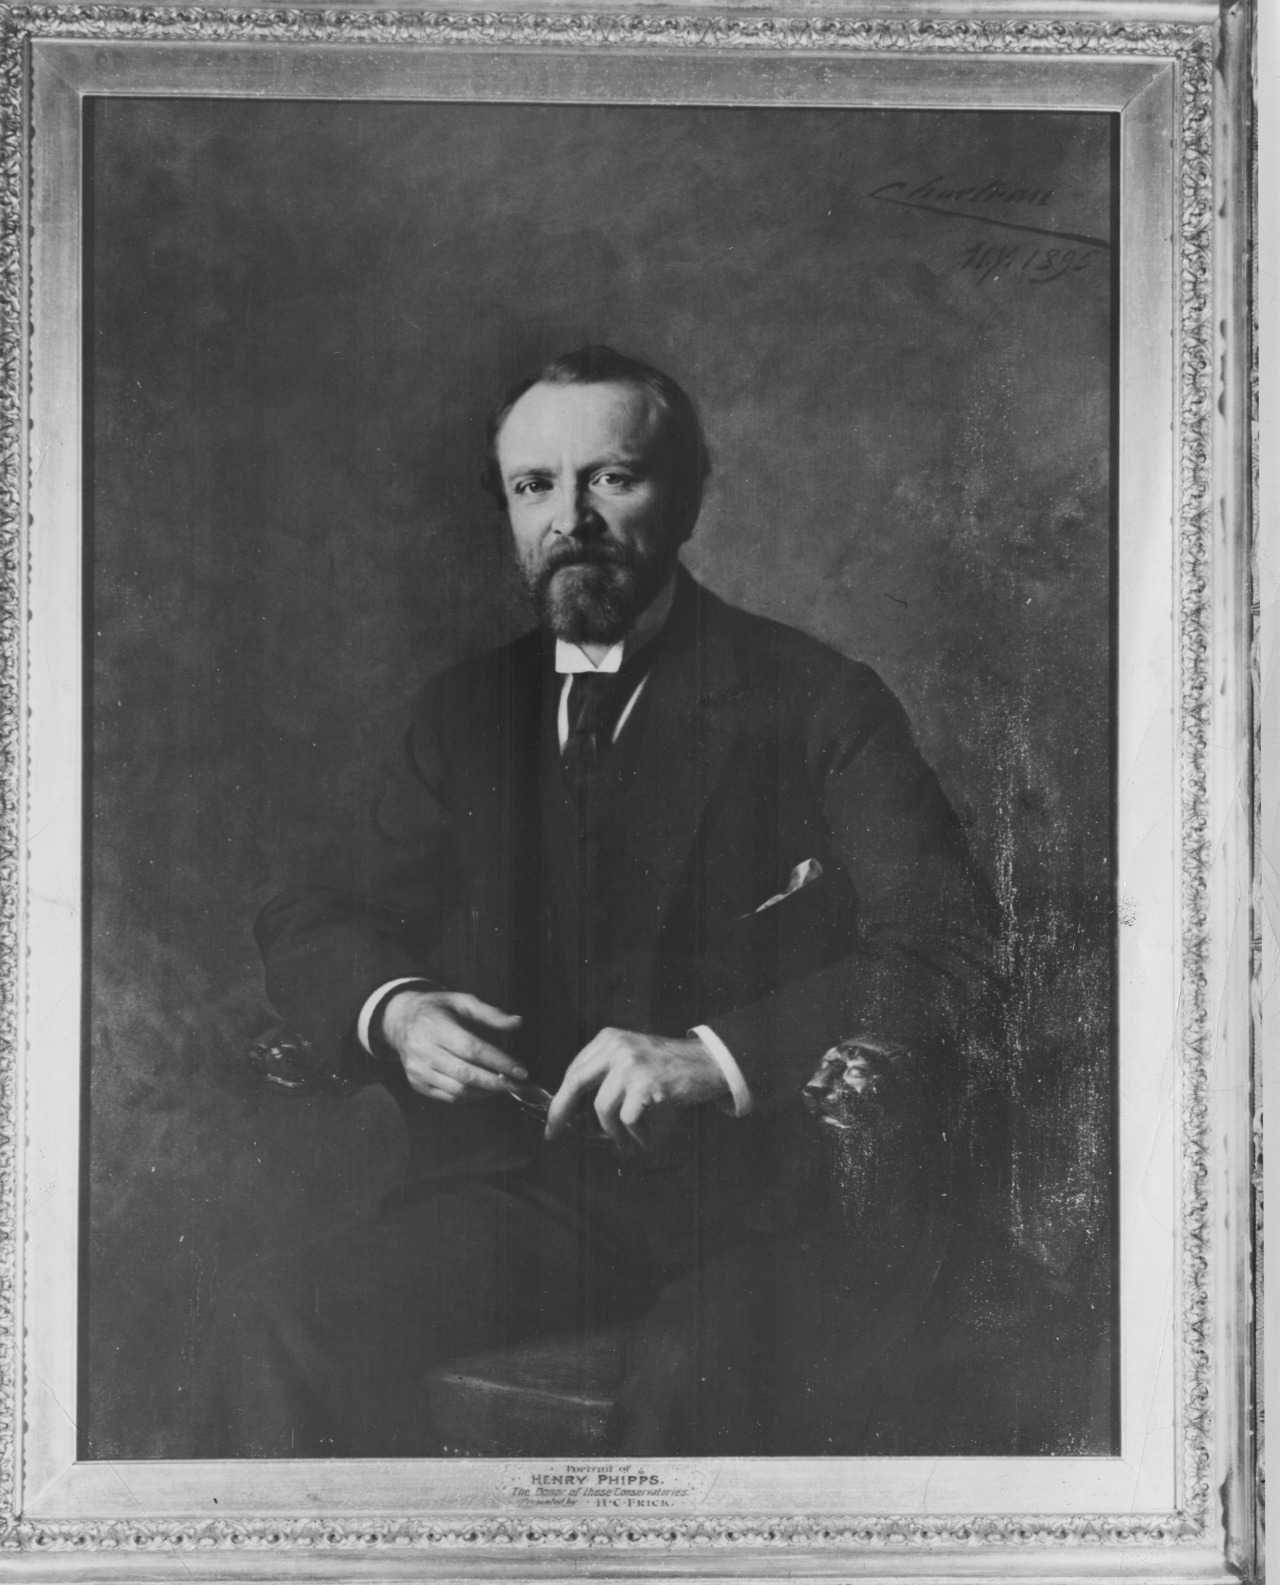 Henry Phipps gave Phipps Conservatory and Botanical Gardens to the city of Pittsburgh in 1893.